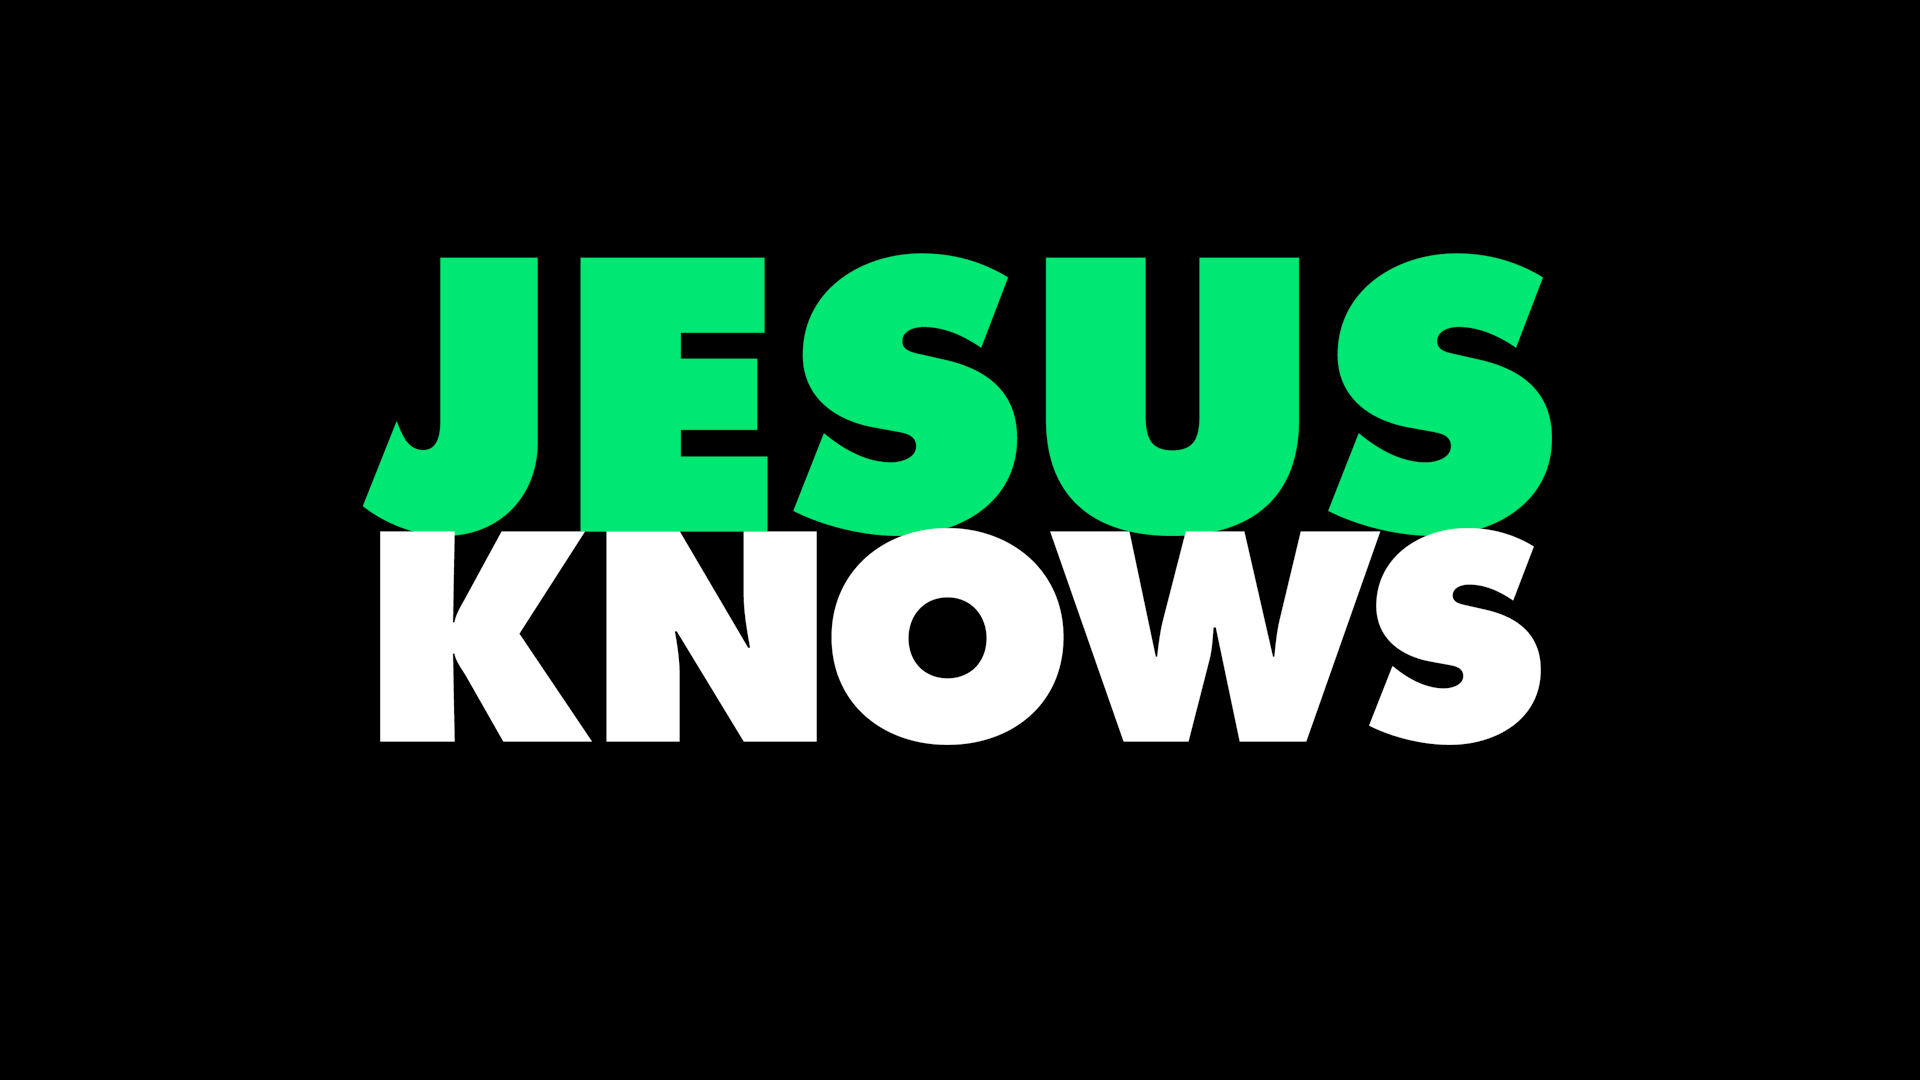 He Knows - In God's Image